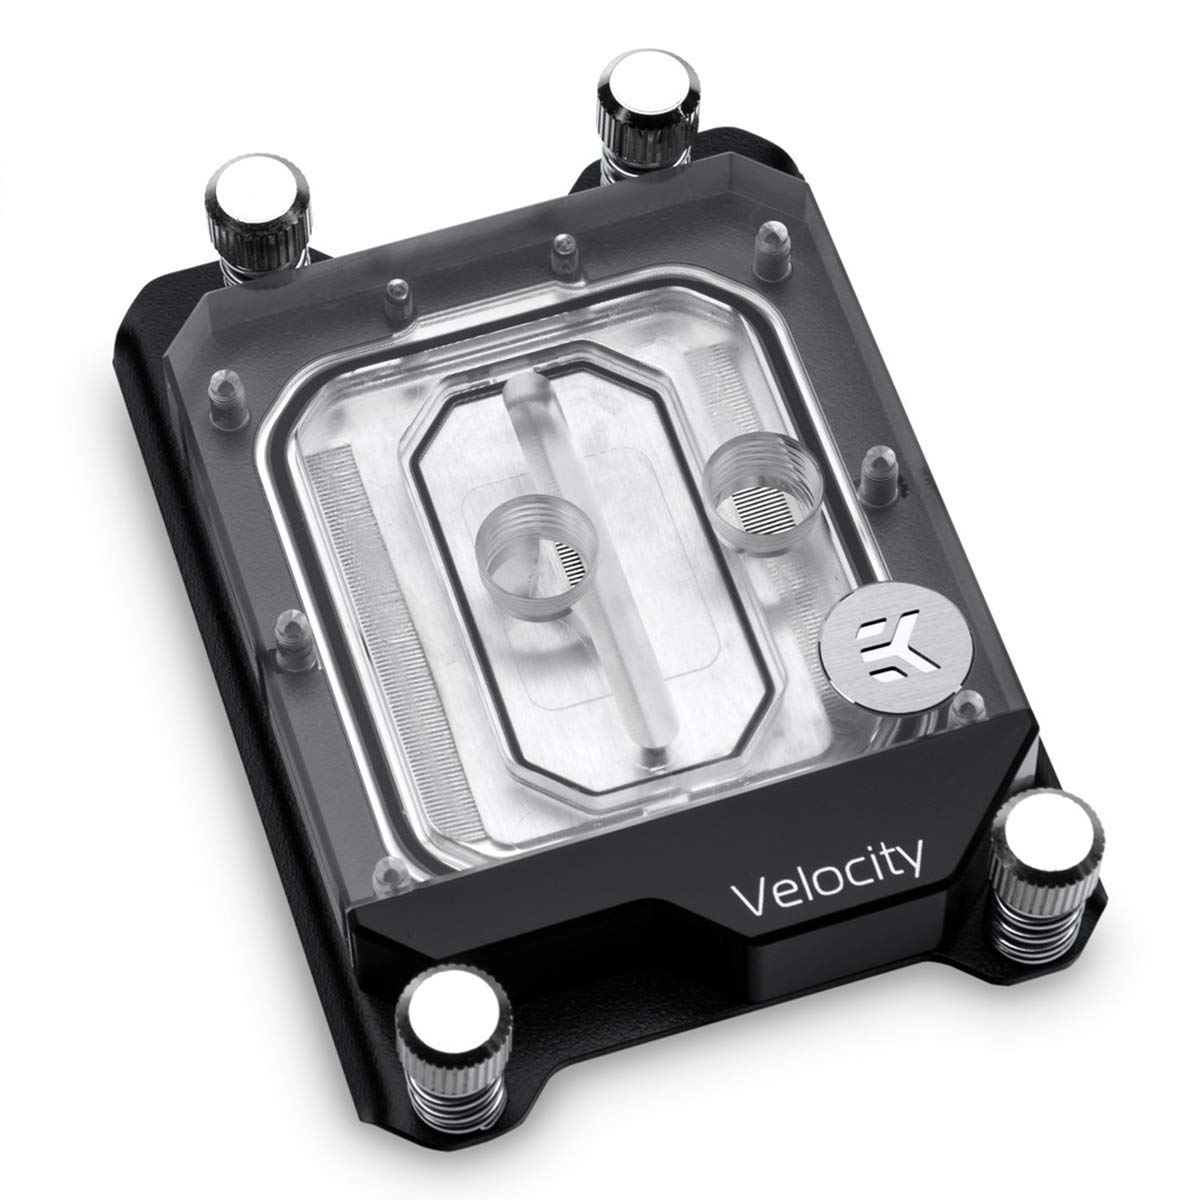 EKWB EK-Velocity sTR4 CPU Waterblock for AMD Ryzen Threadripper CPU, RGB/Nickel/Plexi